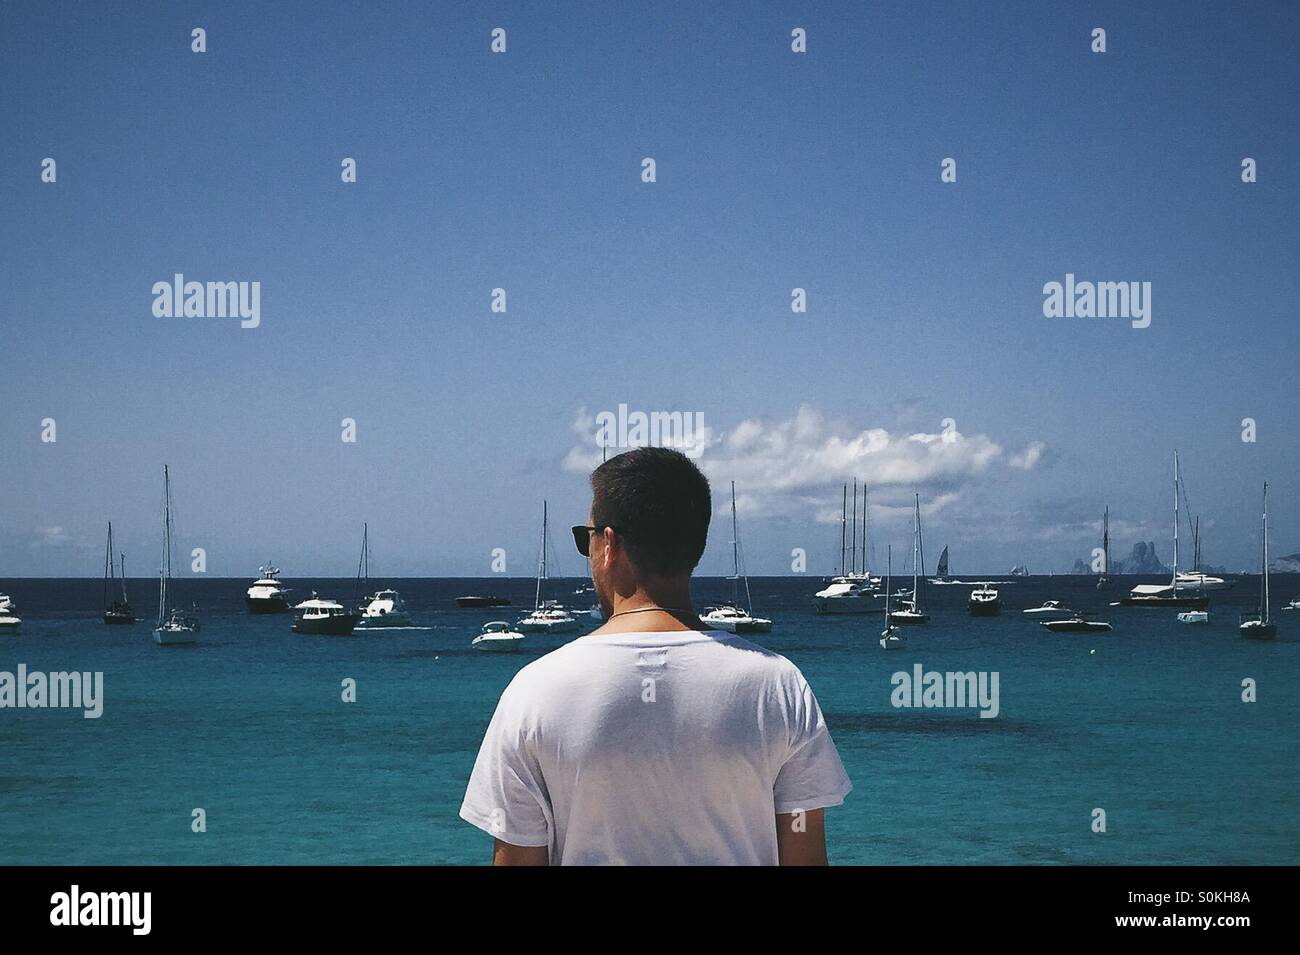 Dreaming about a Boat. - Stock Image